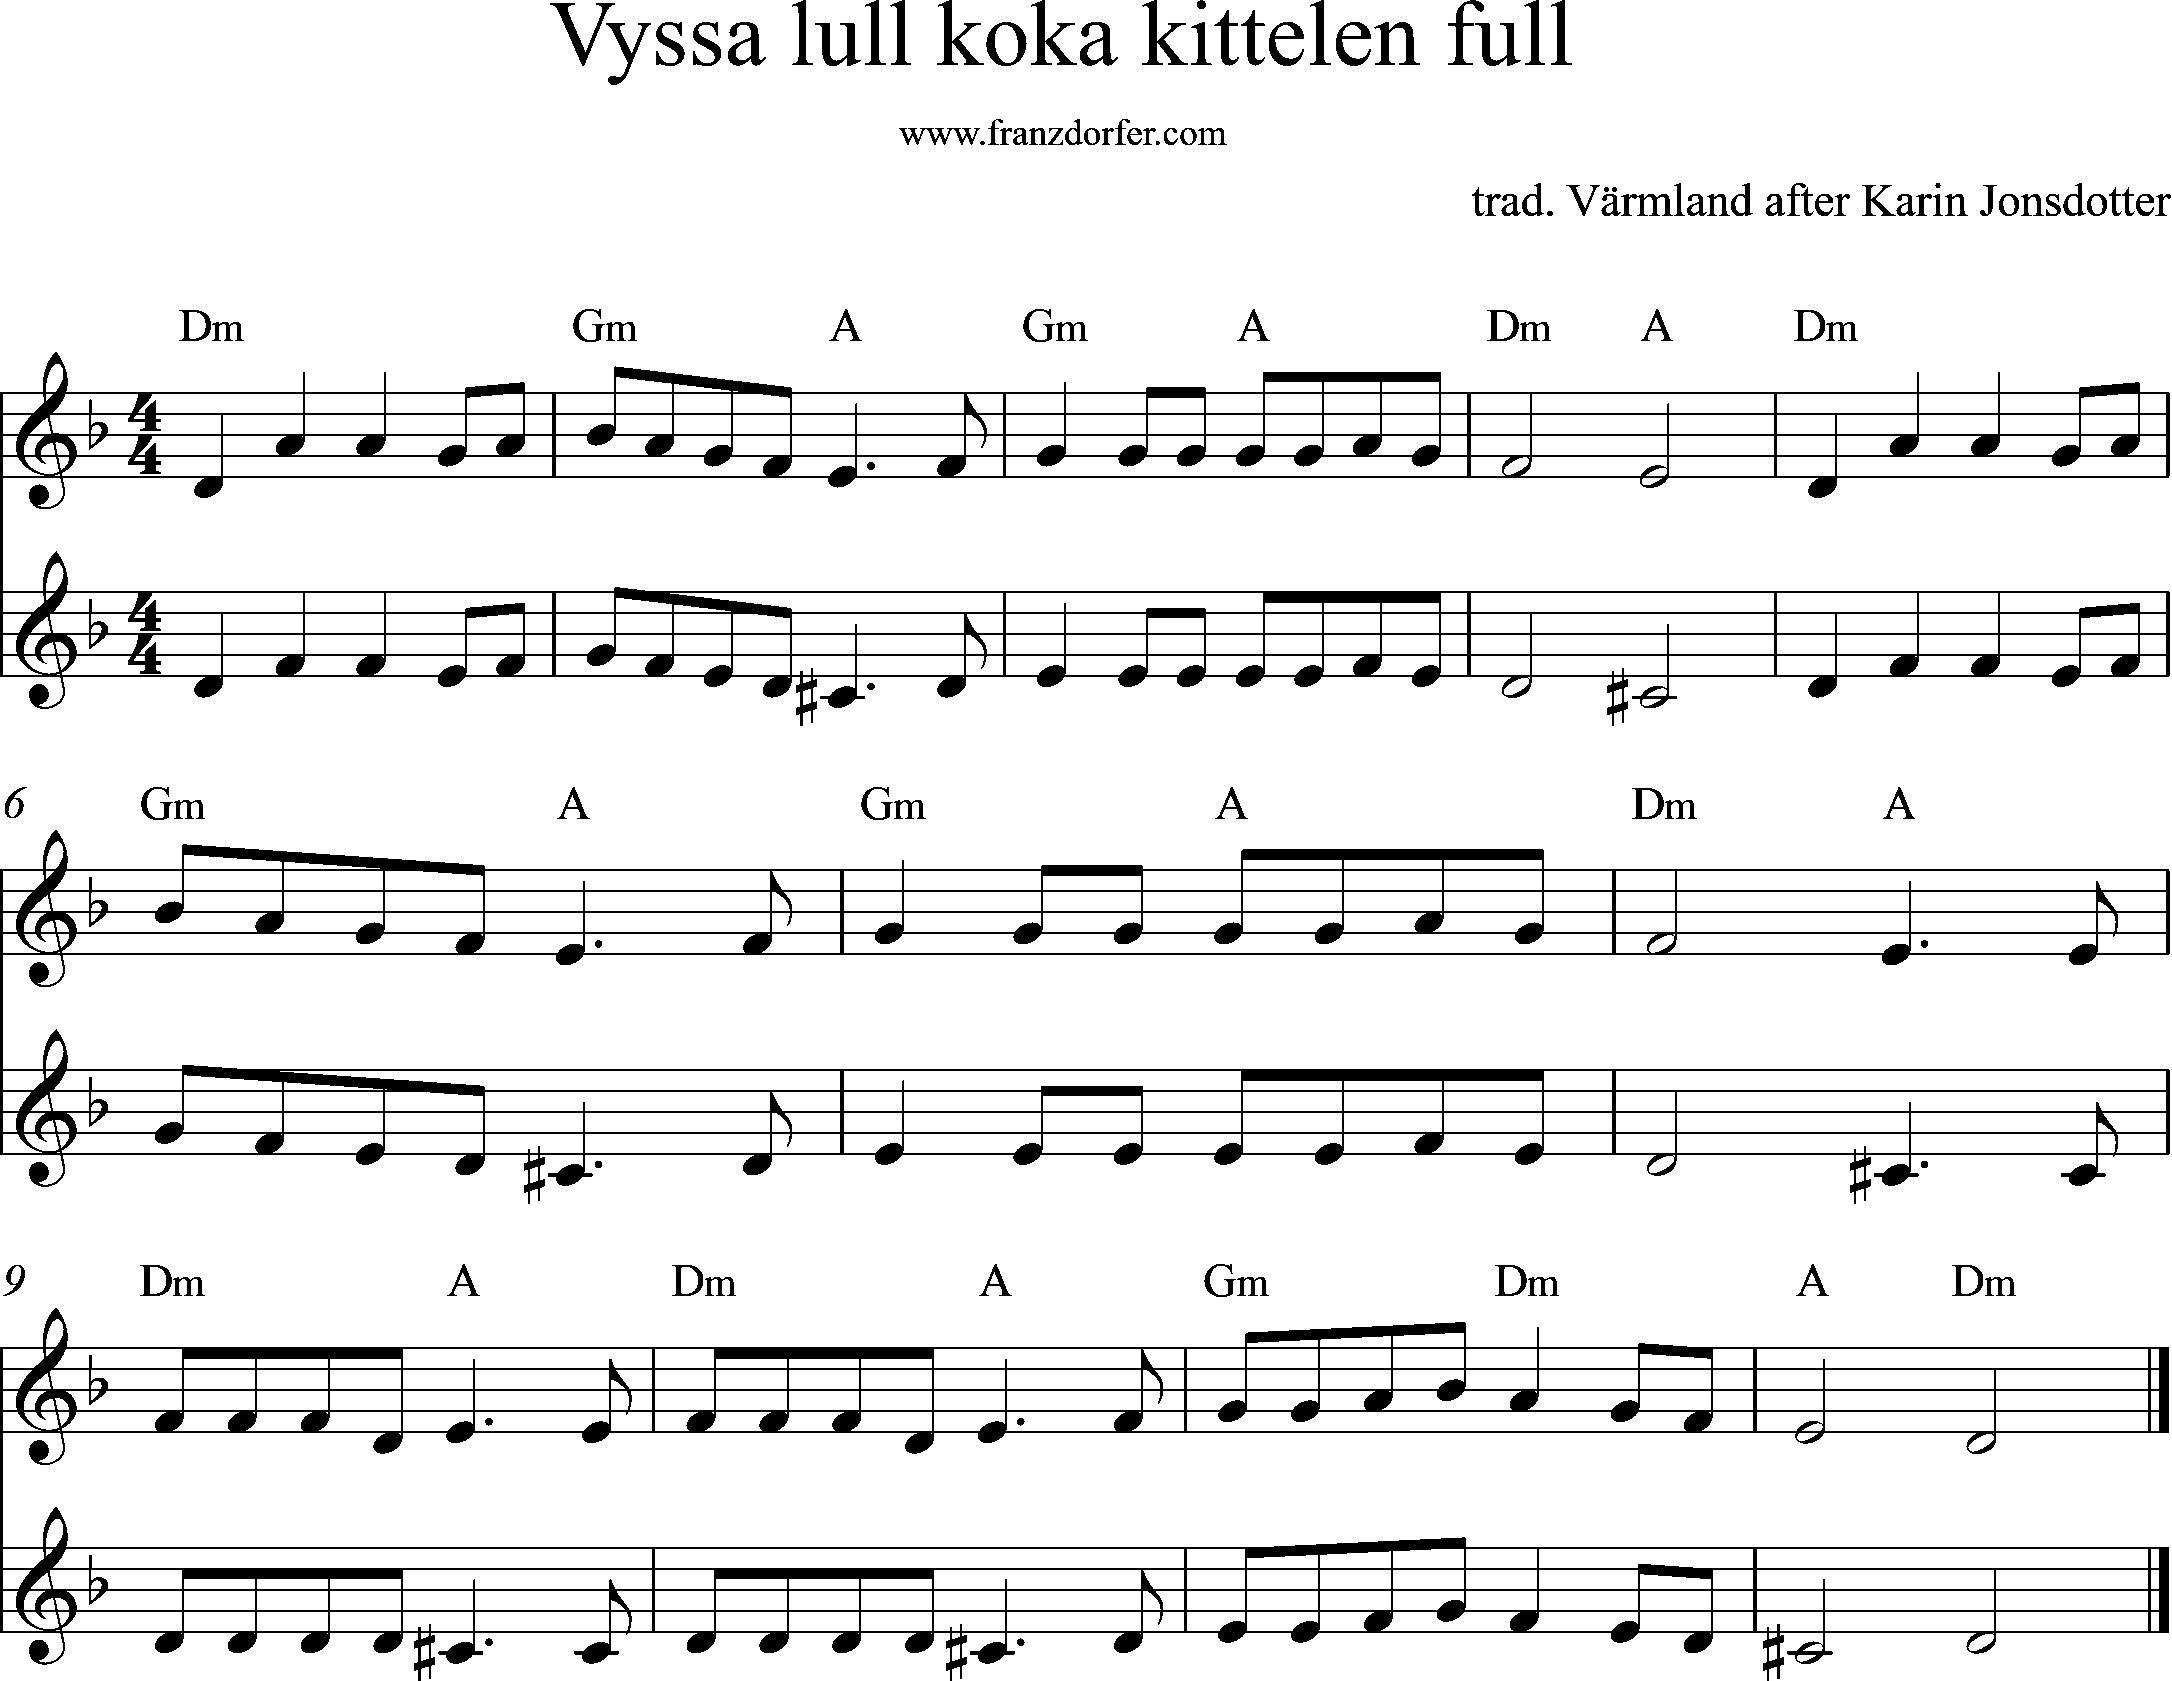 sheetmusic - PDF Sheetmusic -Vyssa lull koka kittelen full, dm